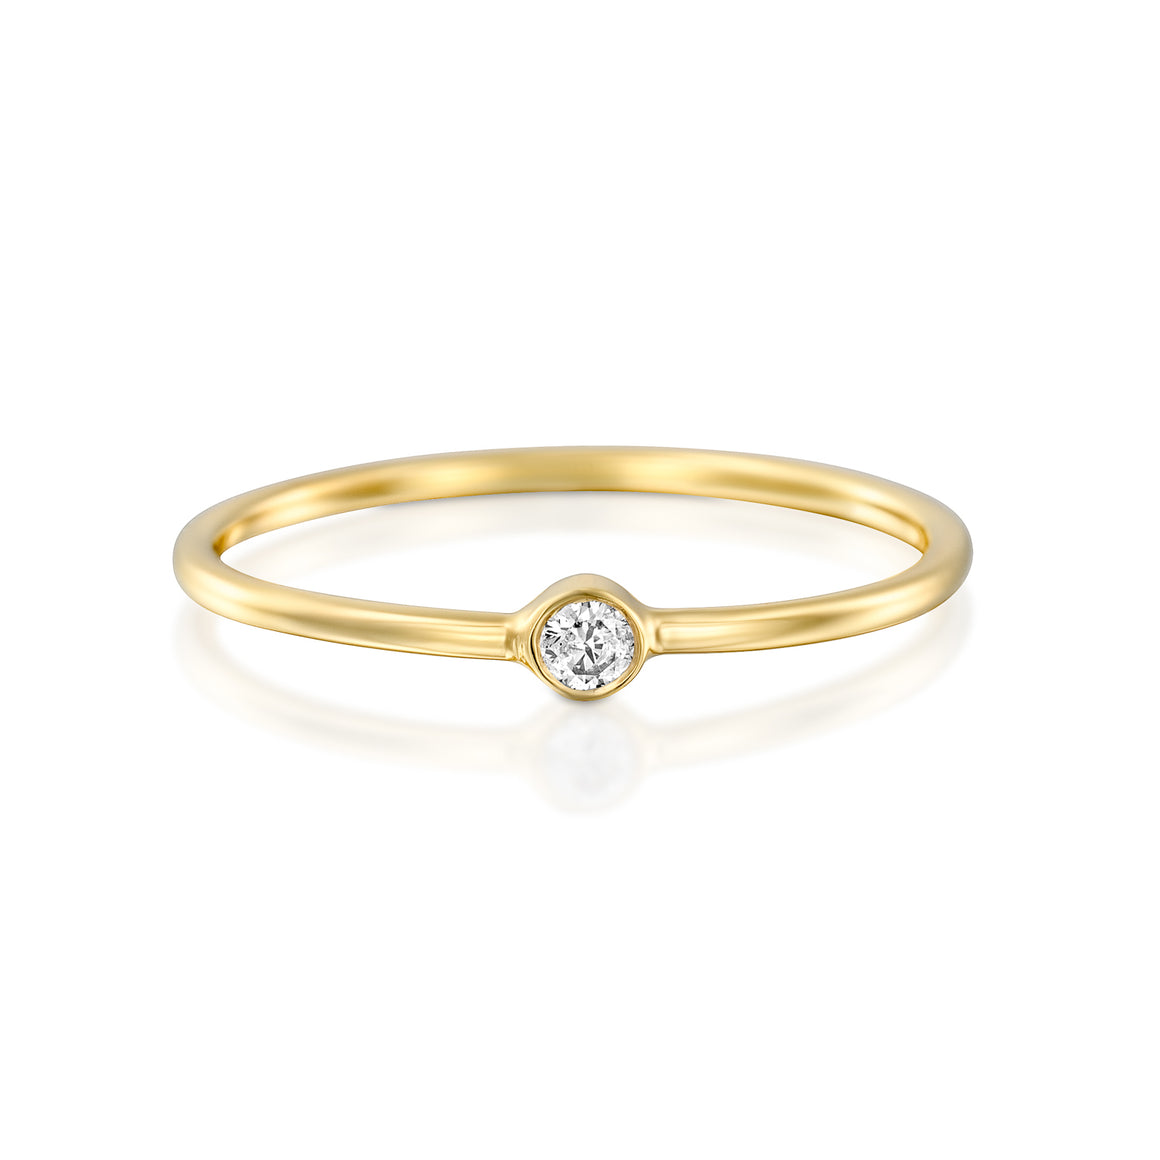 14ct Gold and Diamond Lisette Ring. - Gemma Stone Jewellery